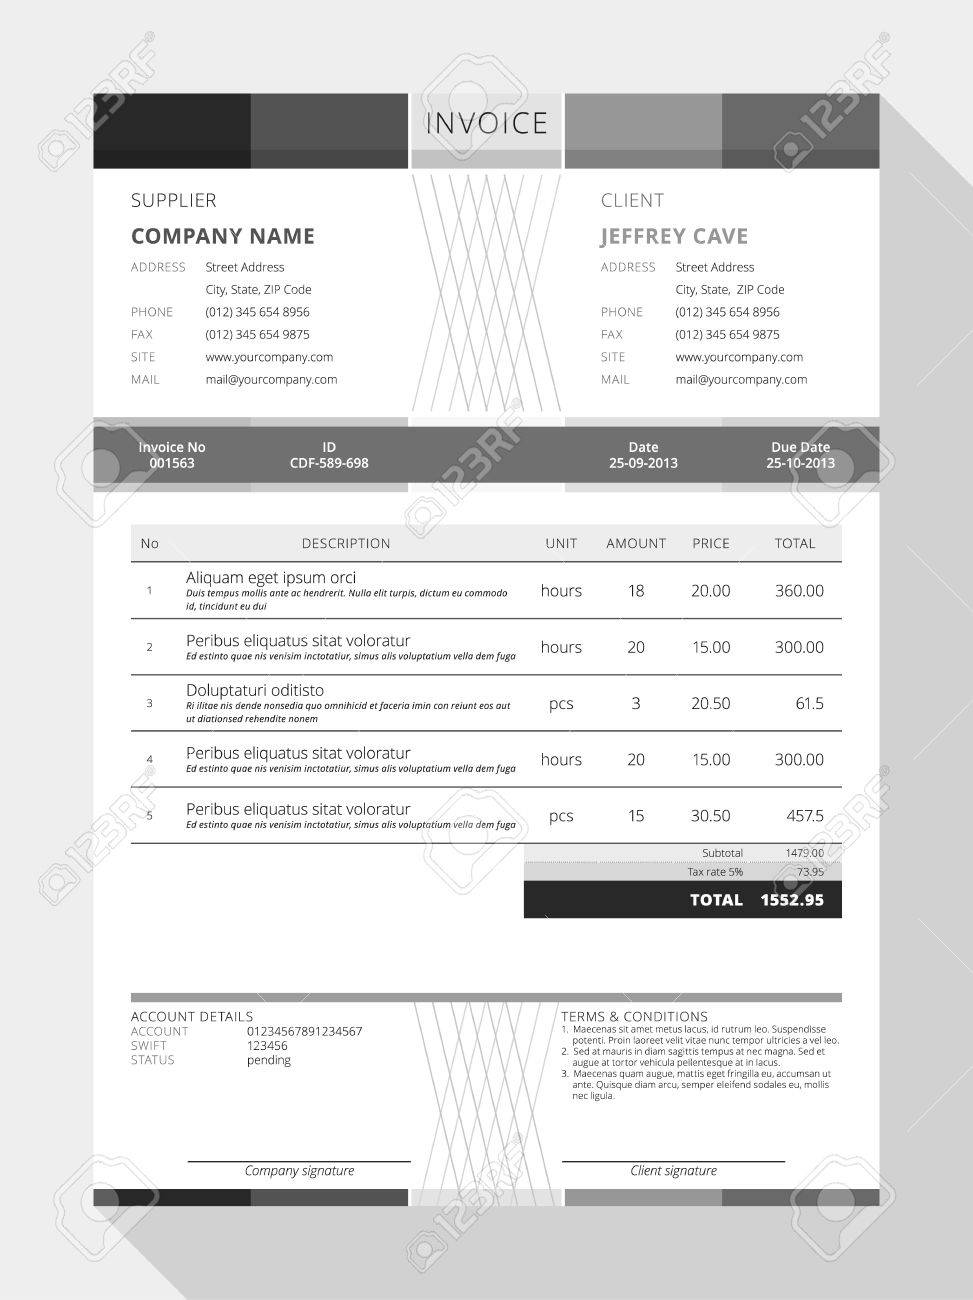 Sandiegolocksmithsus  Unique Design An Invoice  Professional Graphic Design Invoice  With Fascinating Vector Customizable Invoice Form Template Design Vector   Design An Invoice With Archaic Download Proforma Invoice Also Invoice Inventory In Addition Best Free Invoice And Vehicle Invoice Template As Well As Free Invoice Template Word  Additionally Redmine Invoice From Happytomco With Sandiegolocksmithsus  Fascinating Design An Invoice  Professional Graphic Design Invoice  With Archaic Vector Customizable Invoice Form Template Design Vector   Design An Invoice And Unique Download Proforma Invoice Also Invoice Inventory In Addition Best Free Invoice From Happytomco